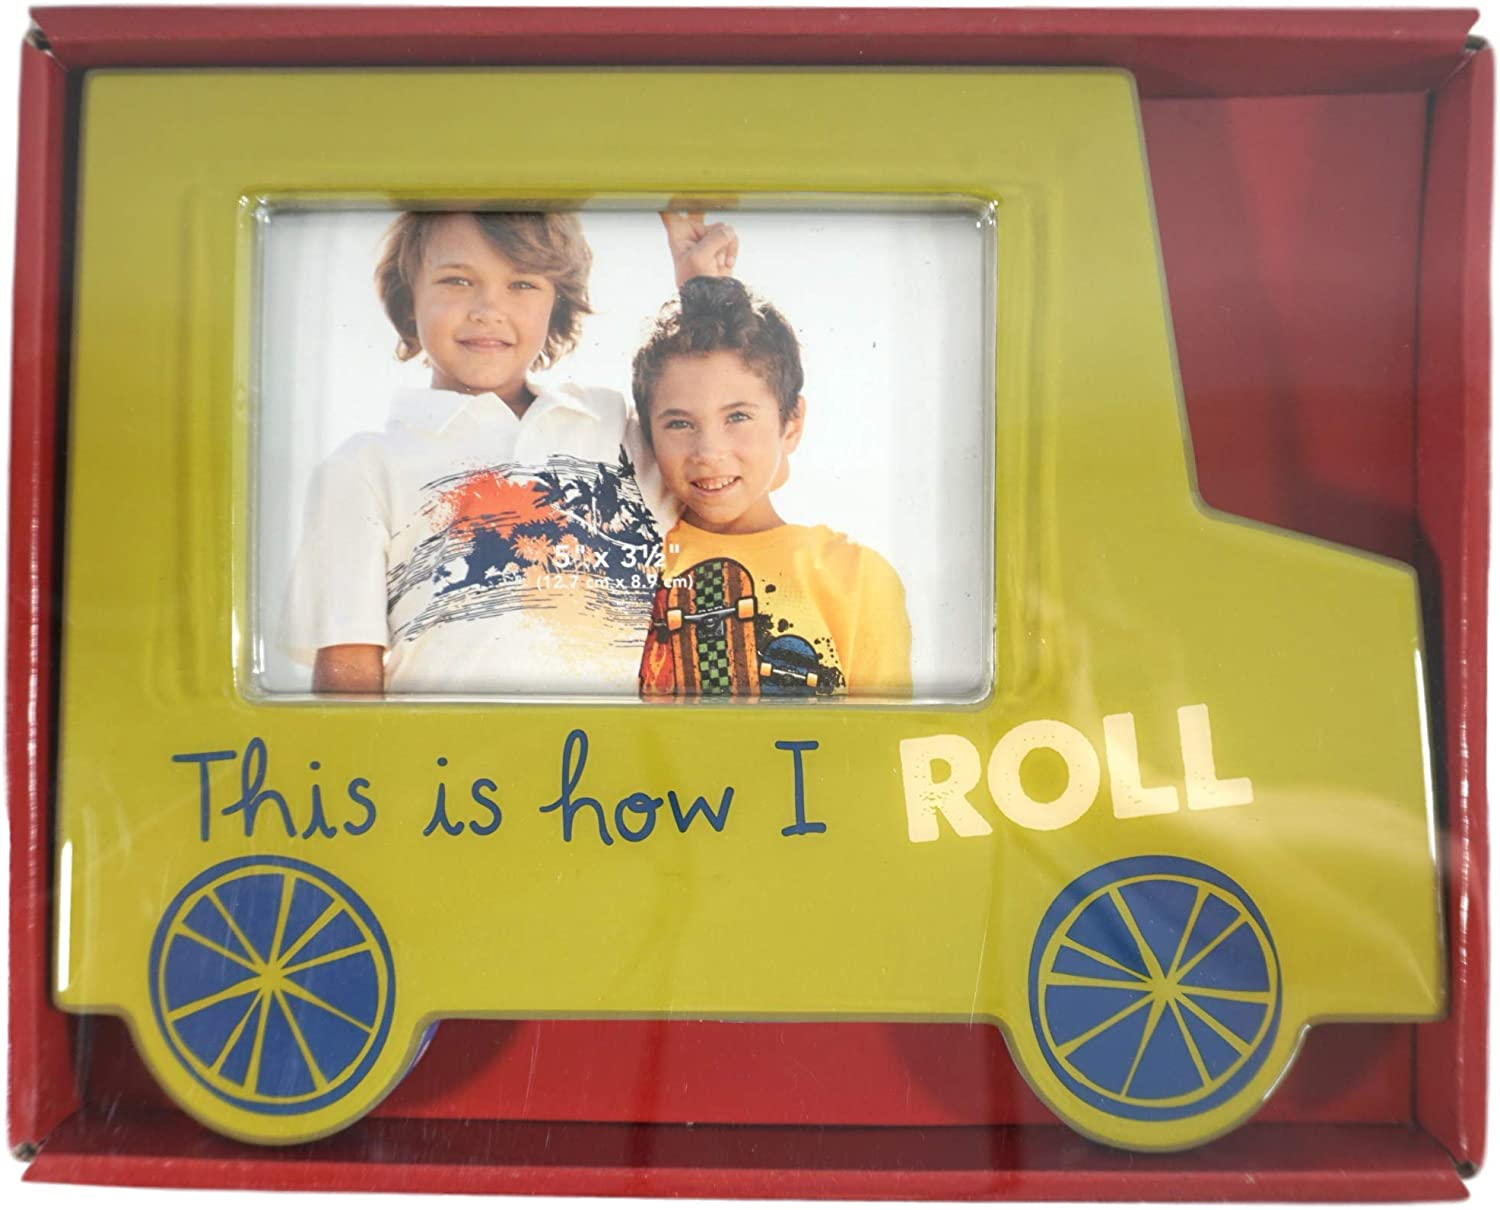 St Nicholas Square This Is How I Roll School Bus Frame 5 X 3-1//2